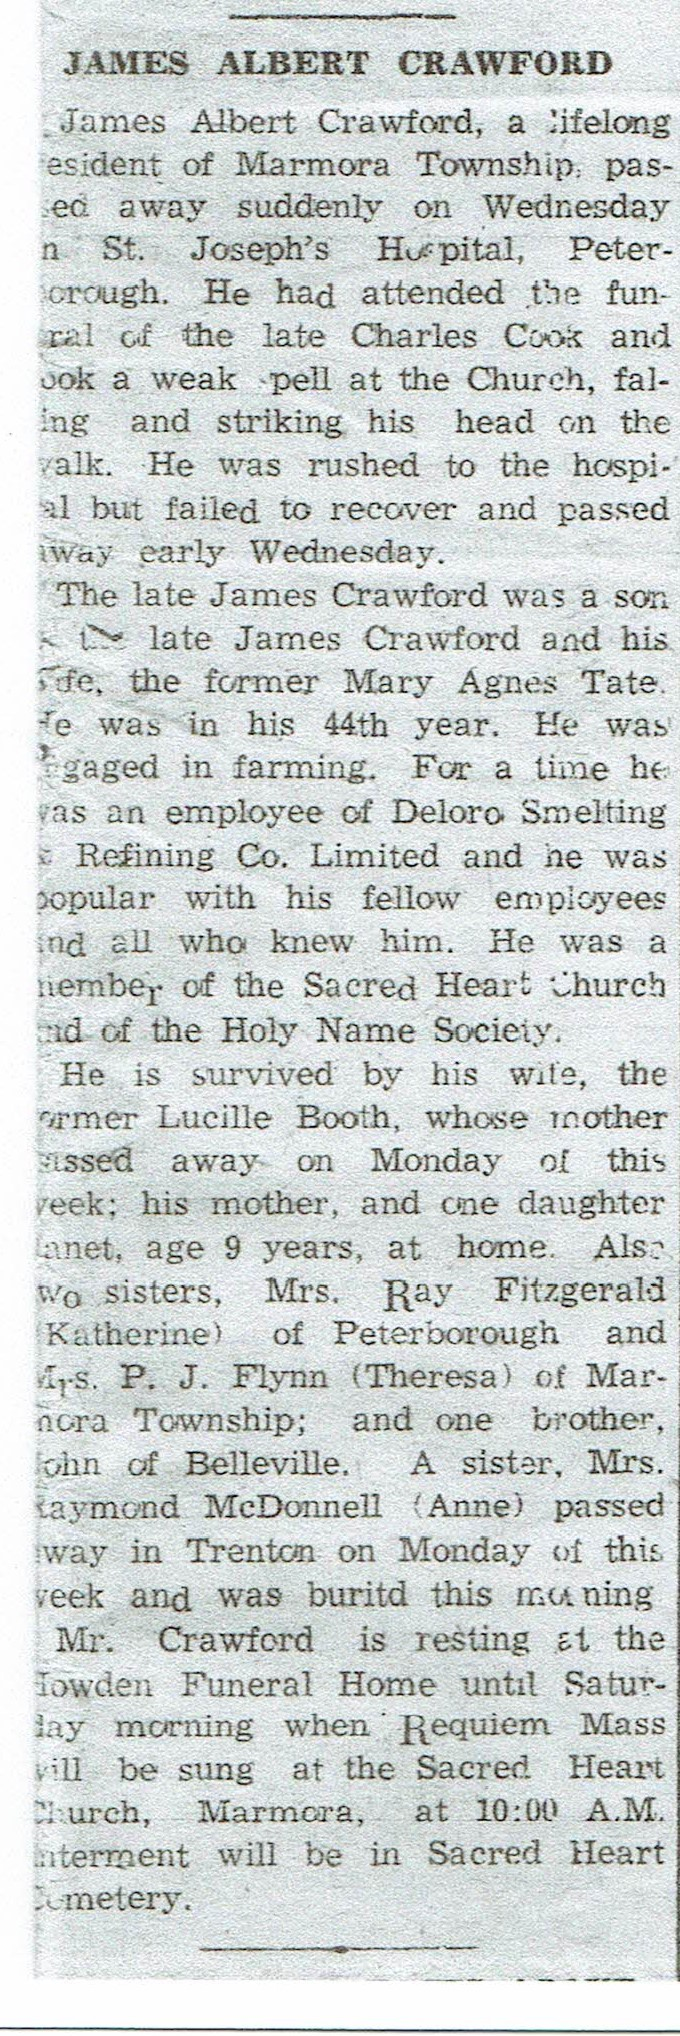 Crawford,  James Albert  1958 obit.jpg